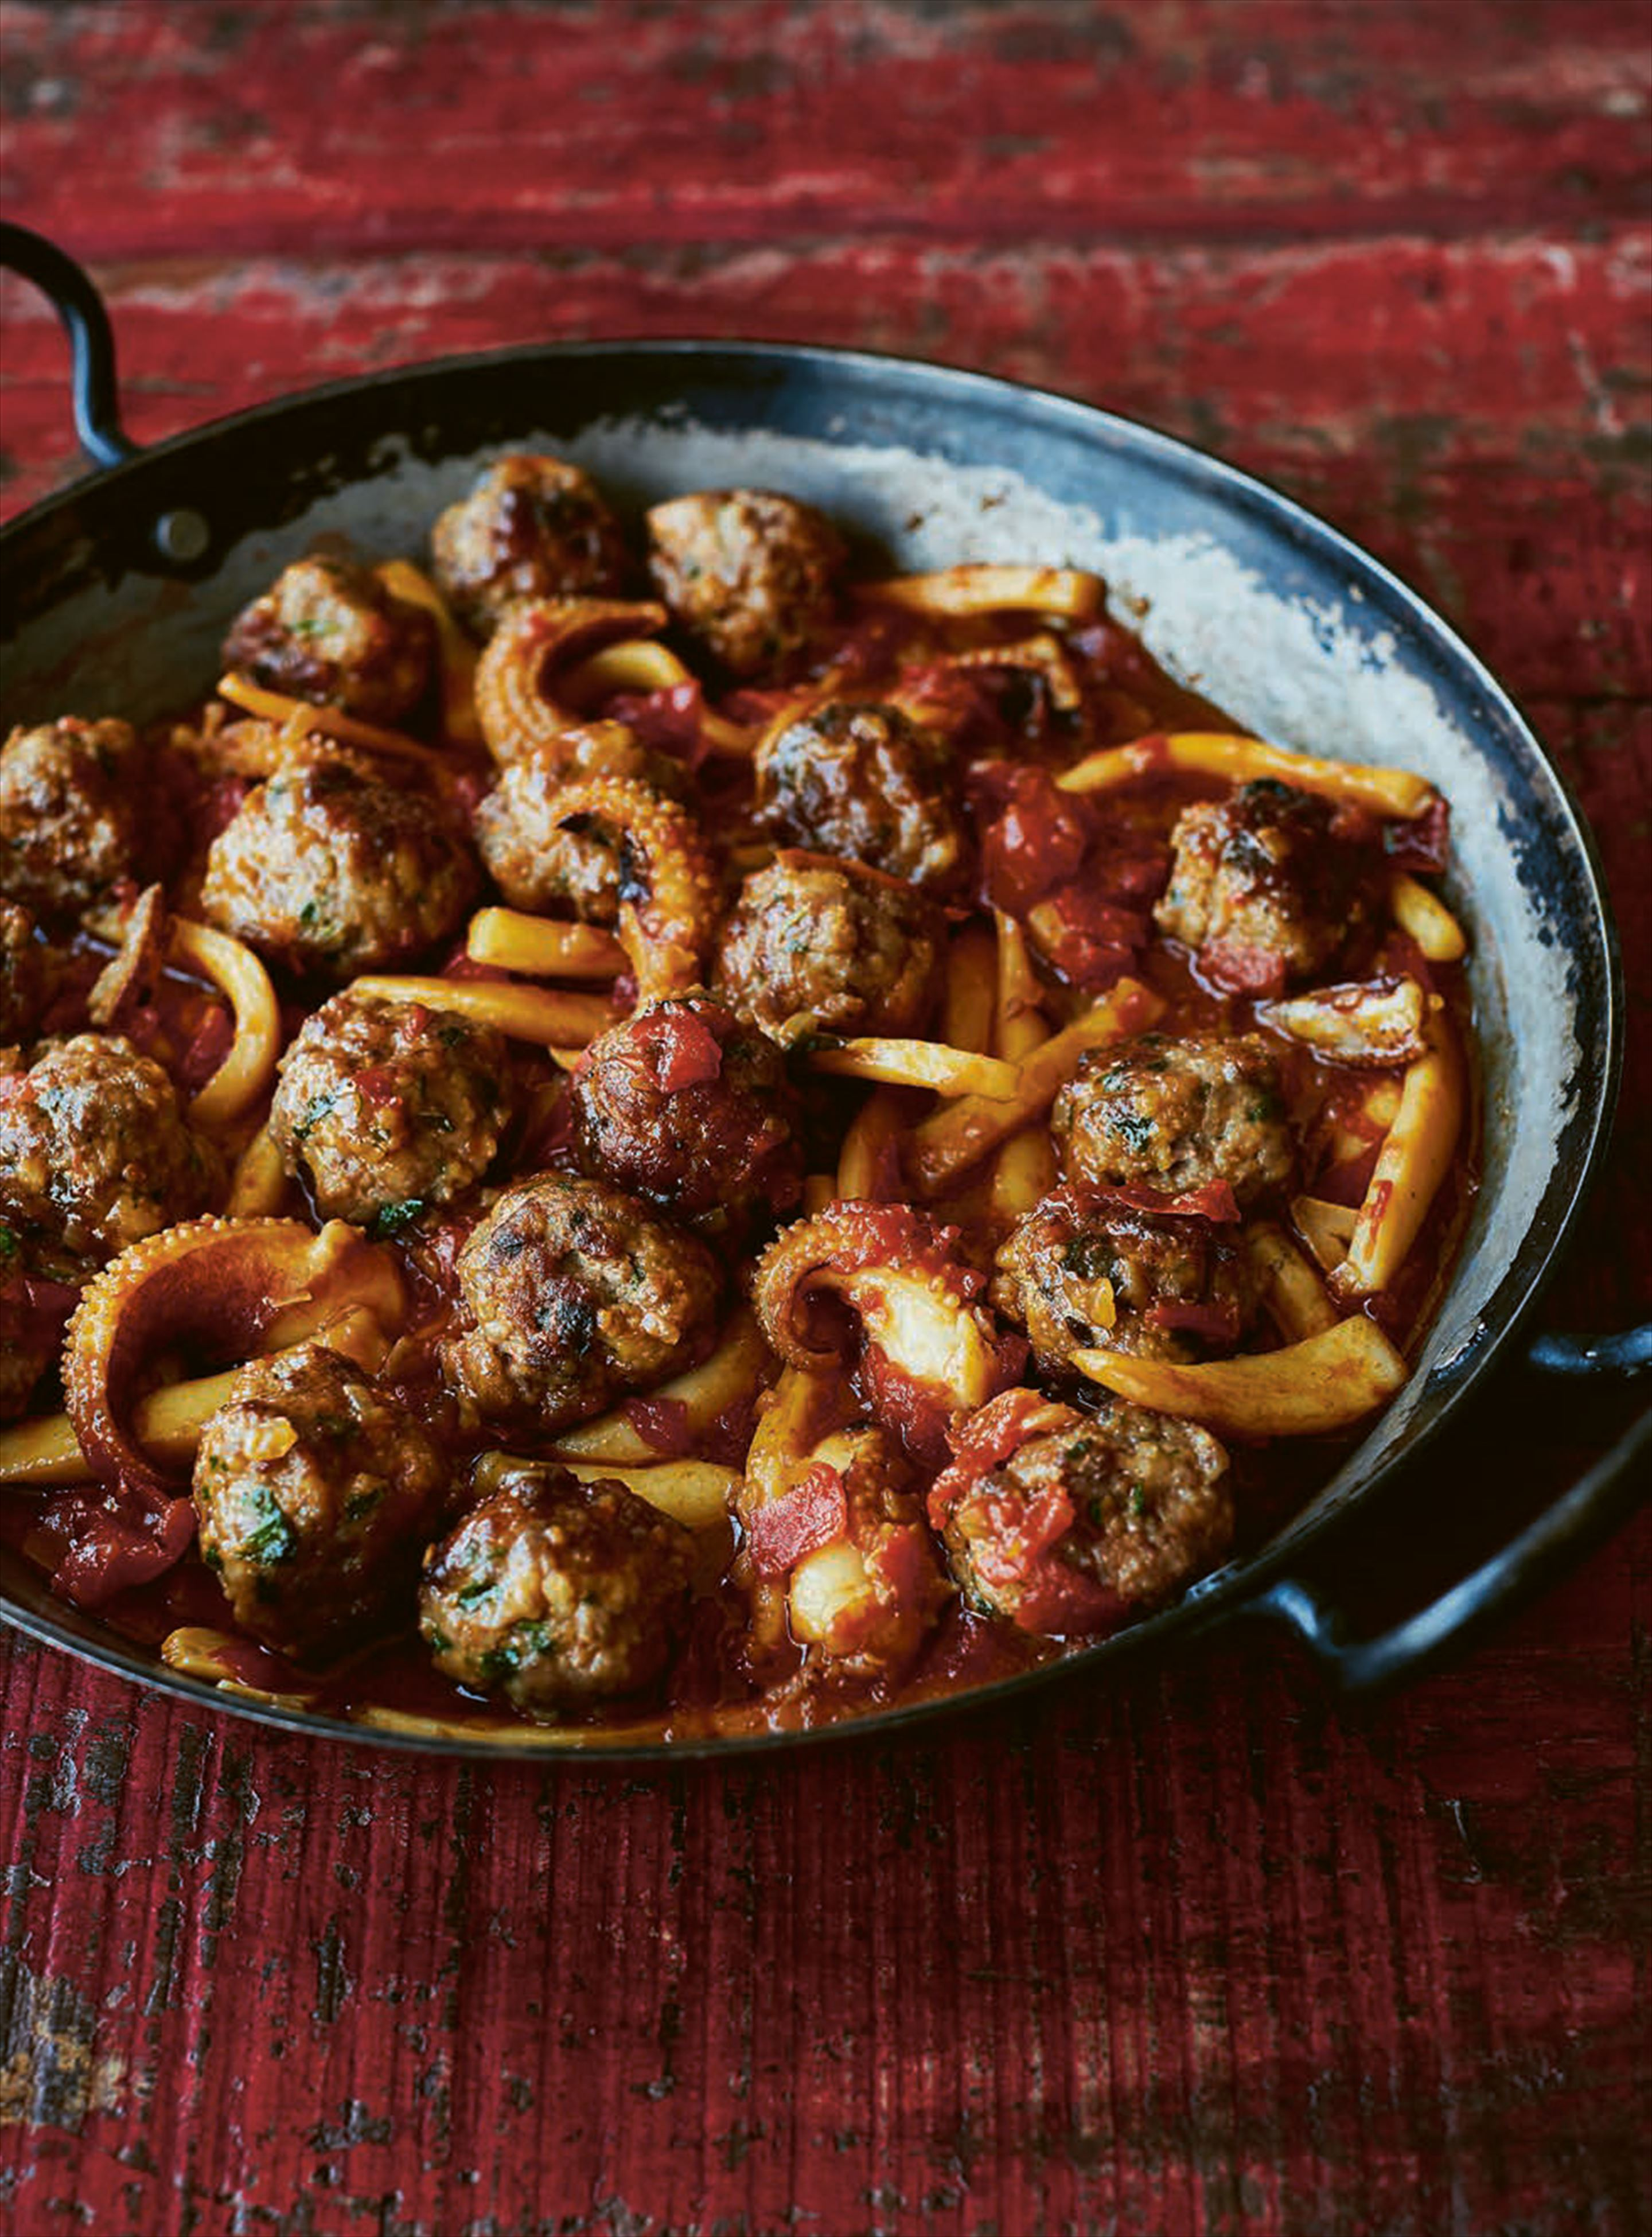 Meatballs with cuttlefish